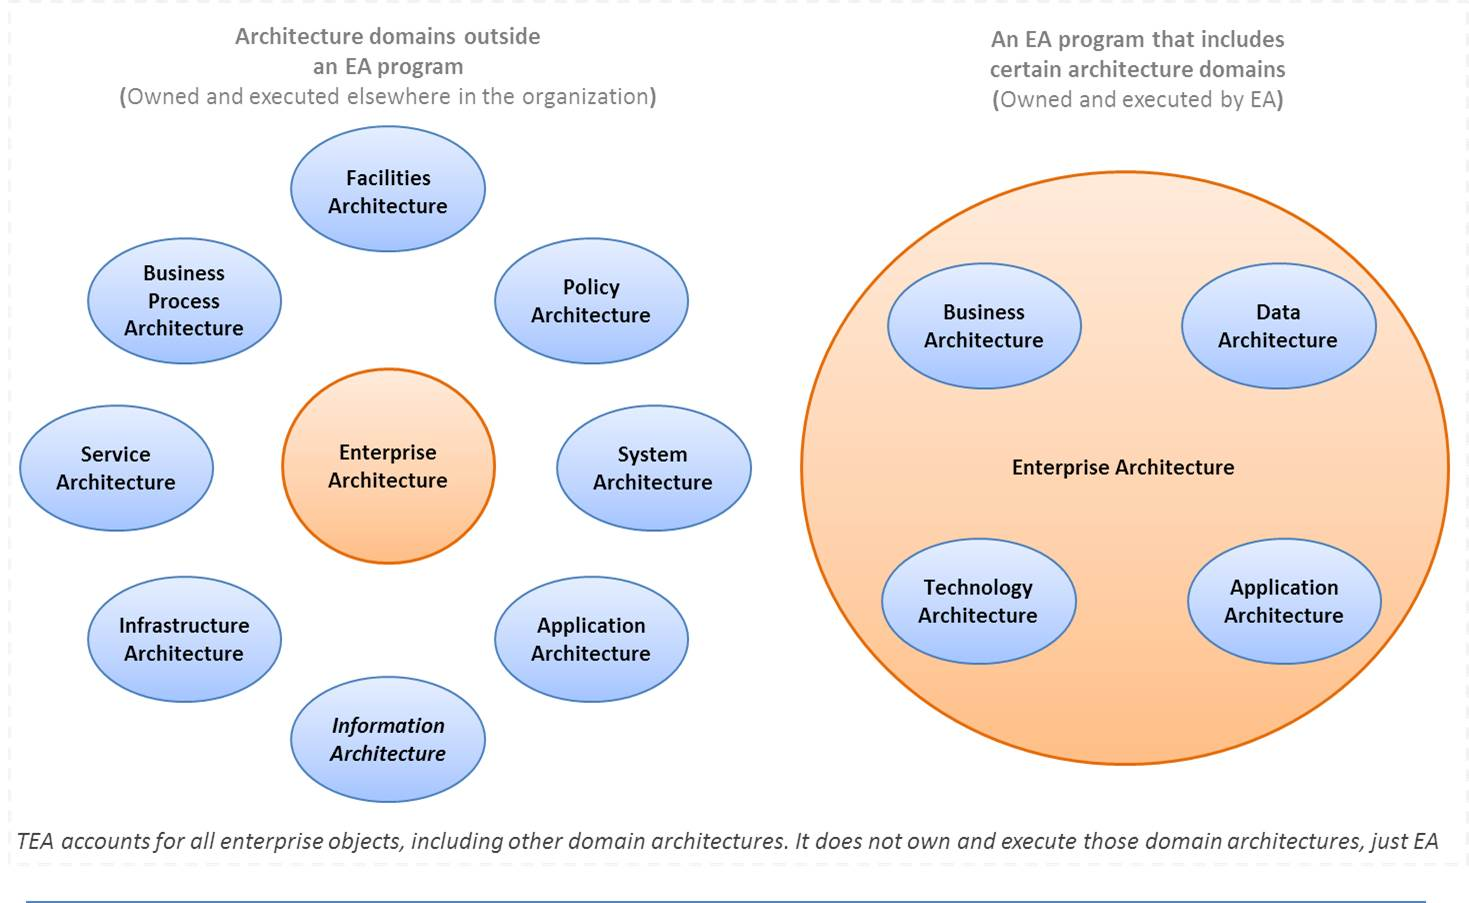 Enterprise architecture where Domaine architecture